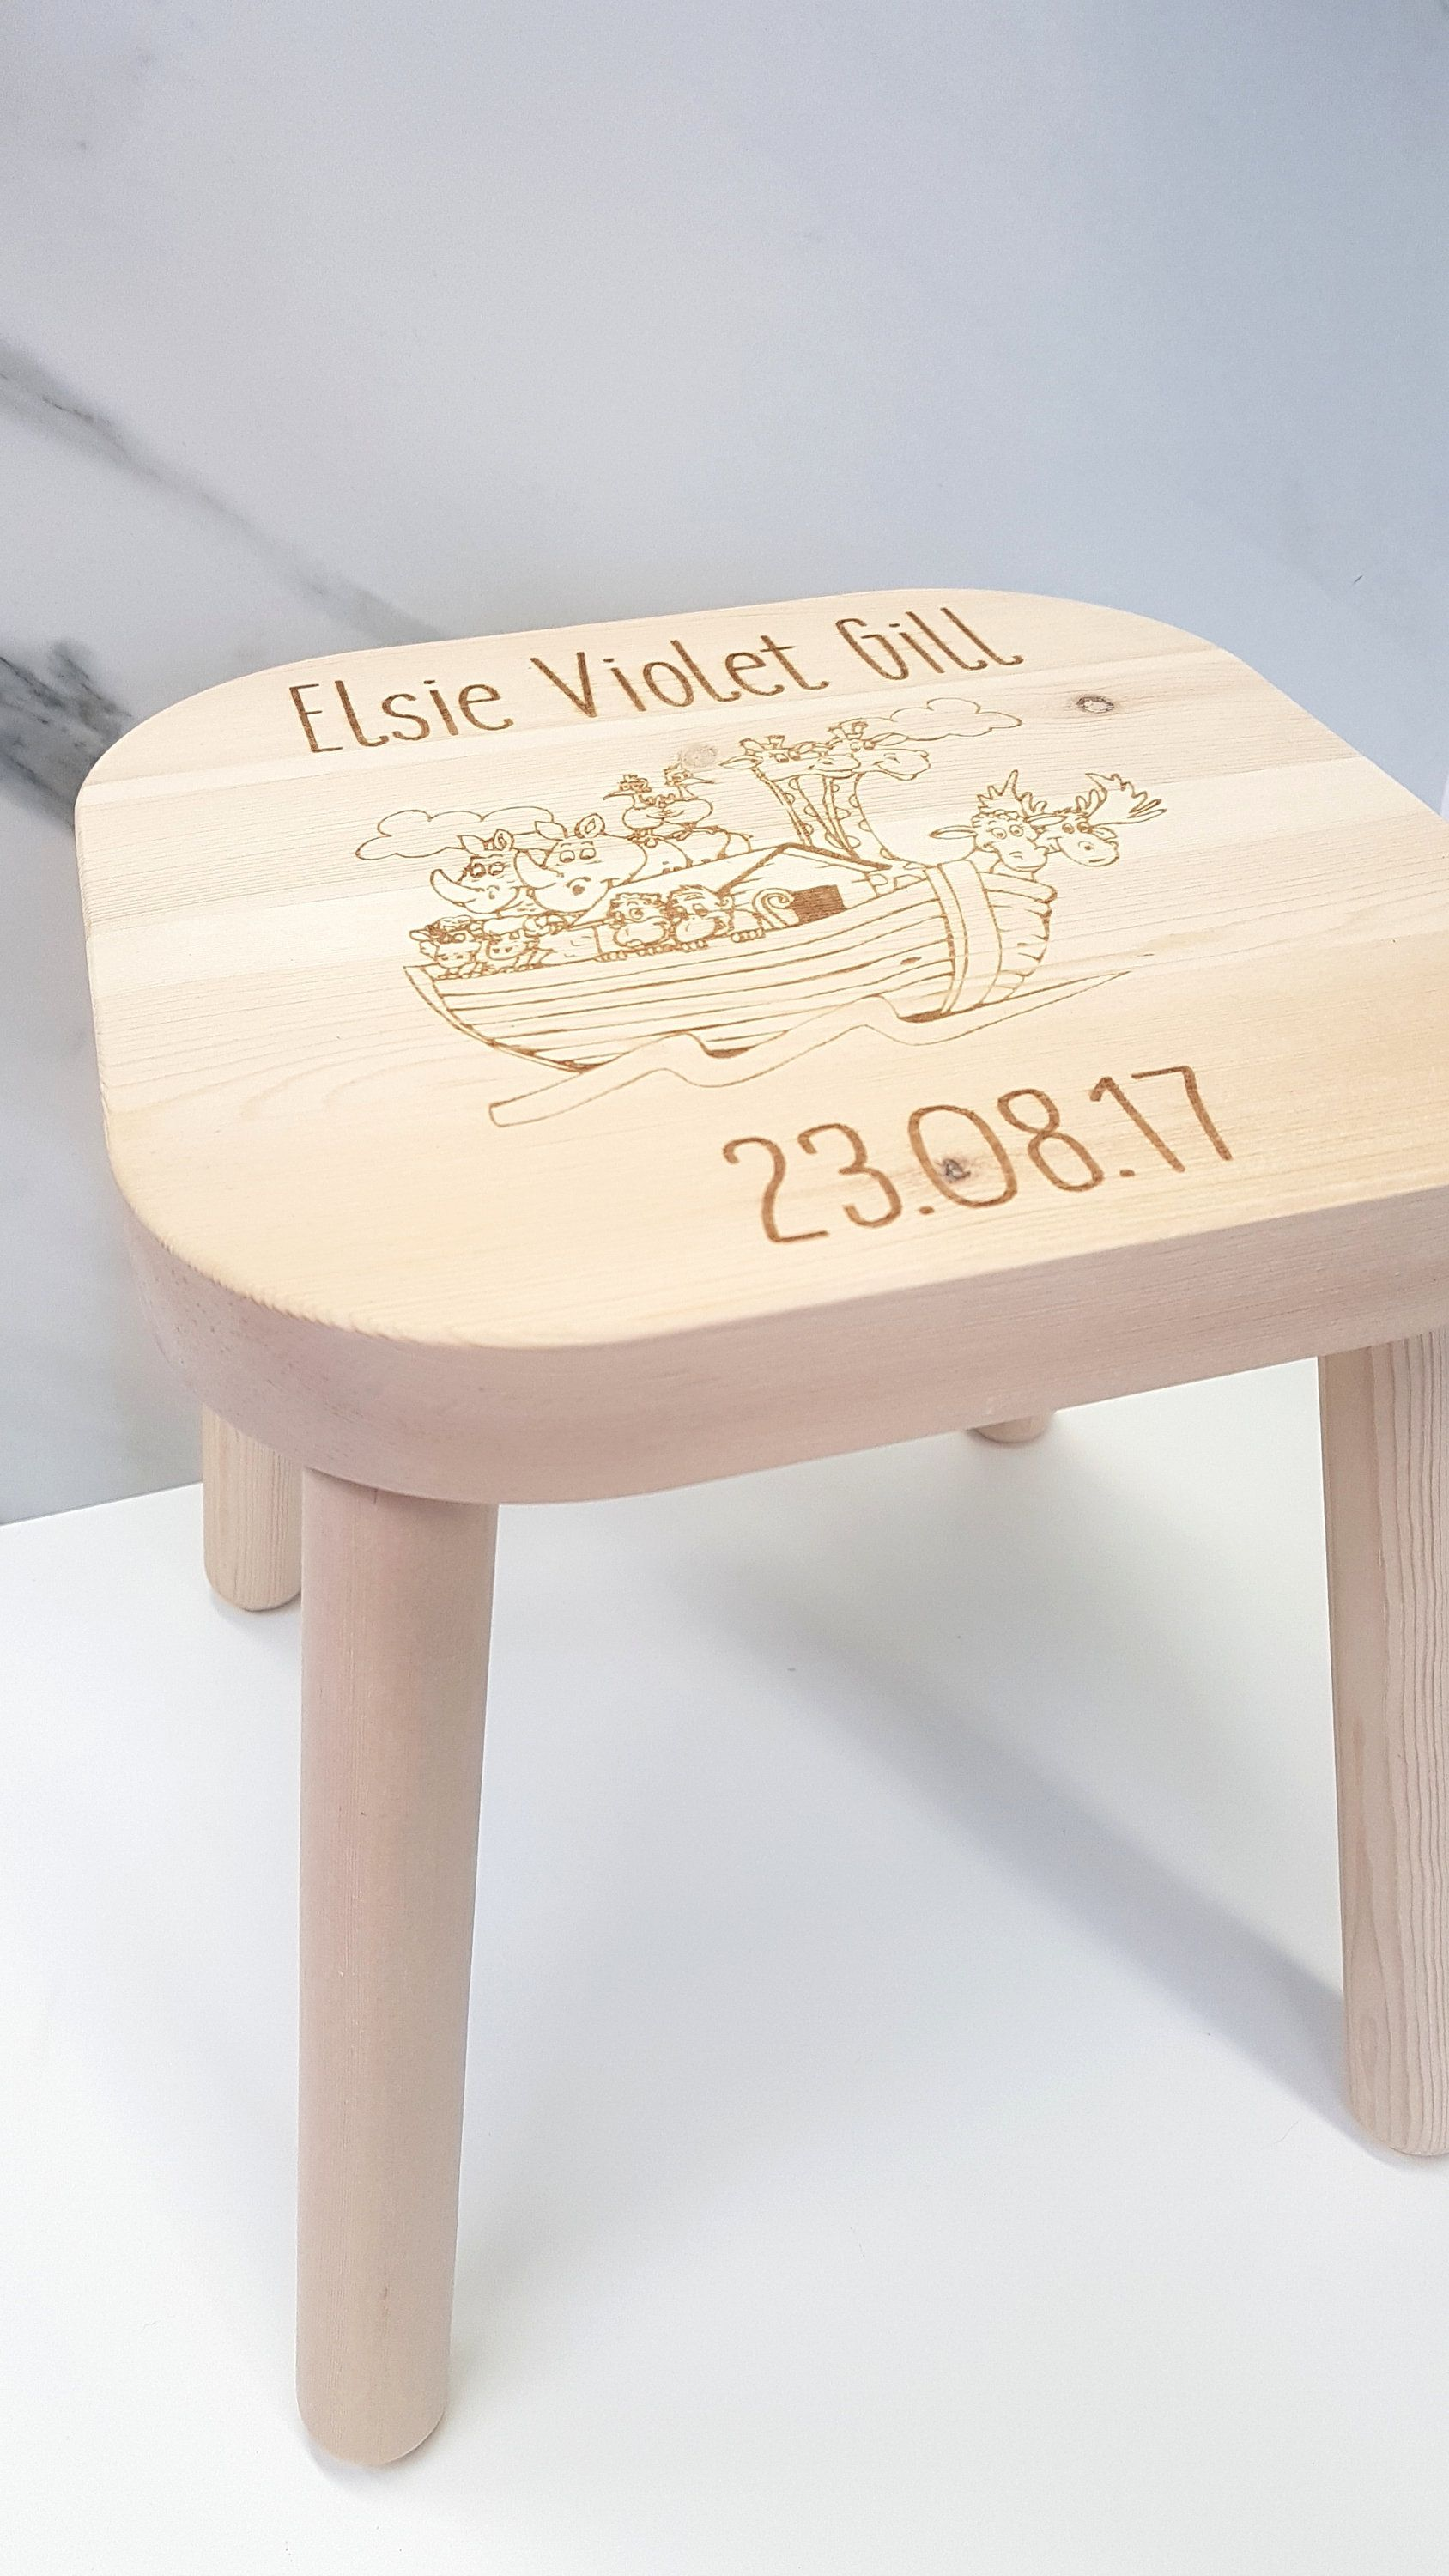 Marvelous Personalised Engraved Wooden Childrens Stool Ts Kids Machost Co Dining Chair Design Ideas Machostcouk